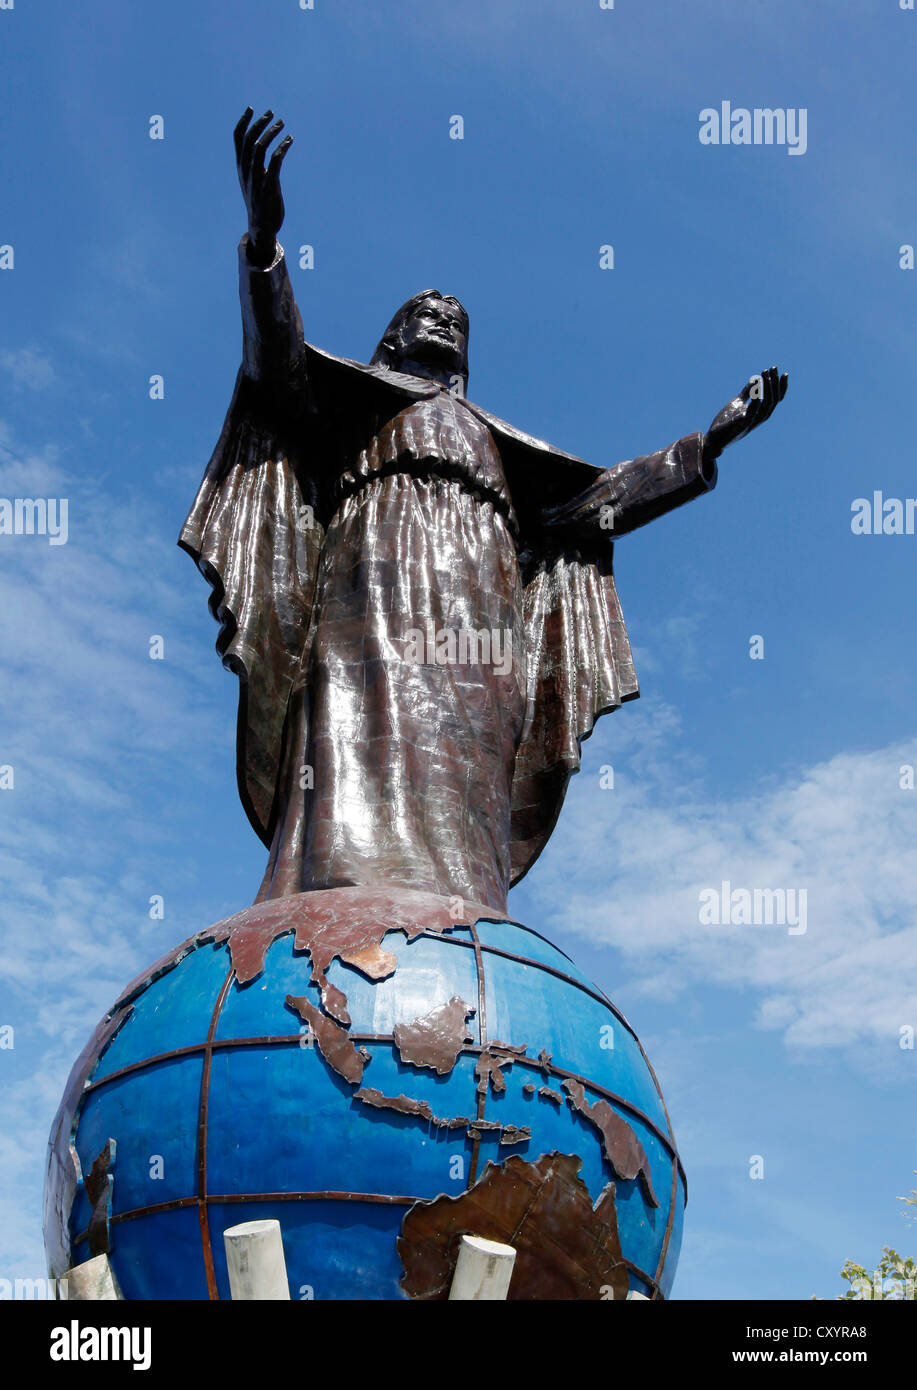 Cristo Rei, Statue of Jesus Christ (27 meters high) on top of the Globe at Kap Fatu Cama outside the capital Dili, - Stock Image